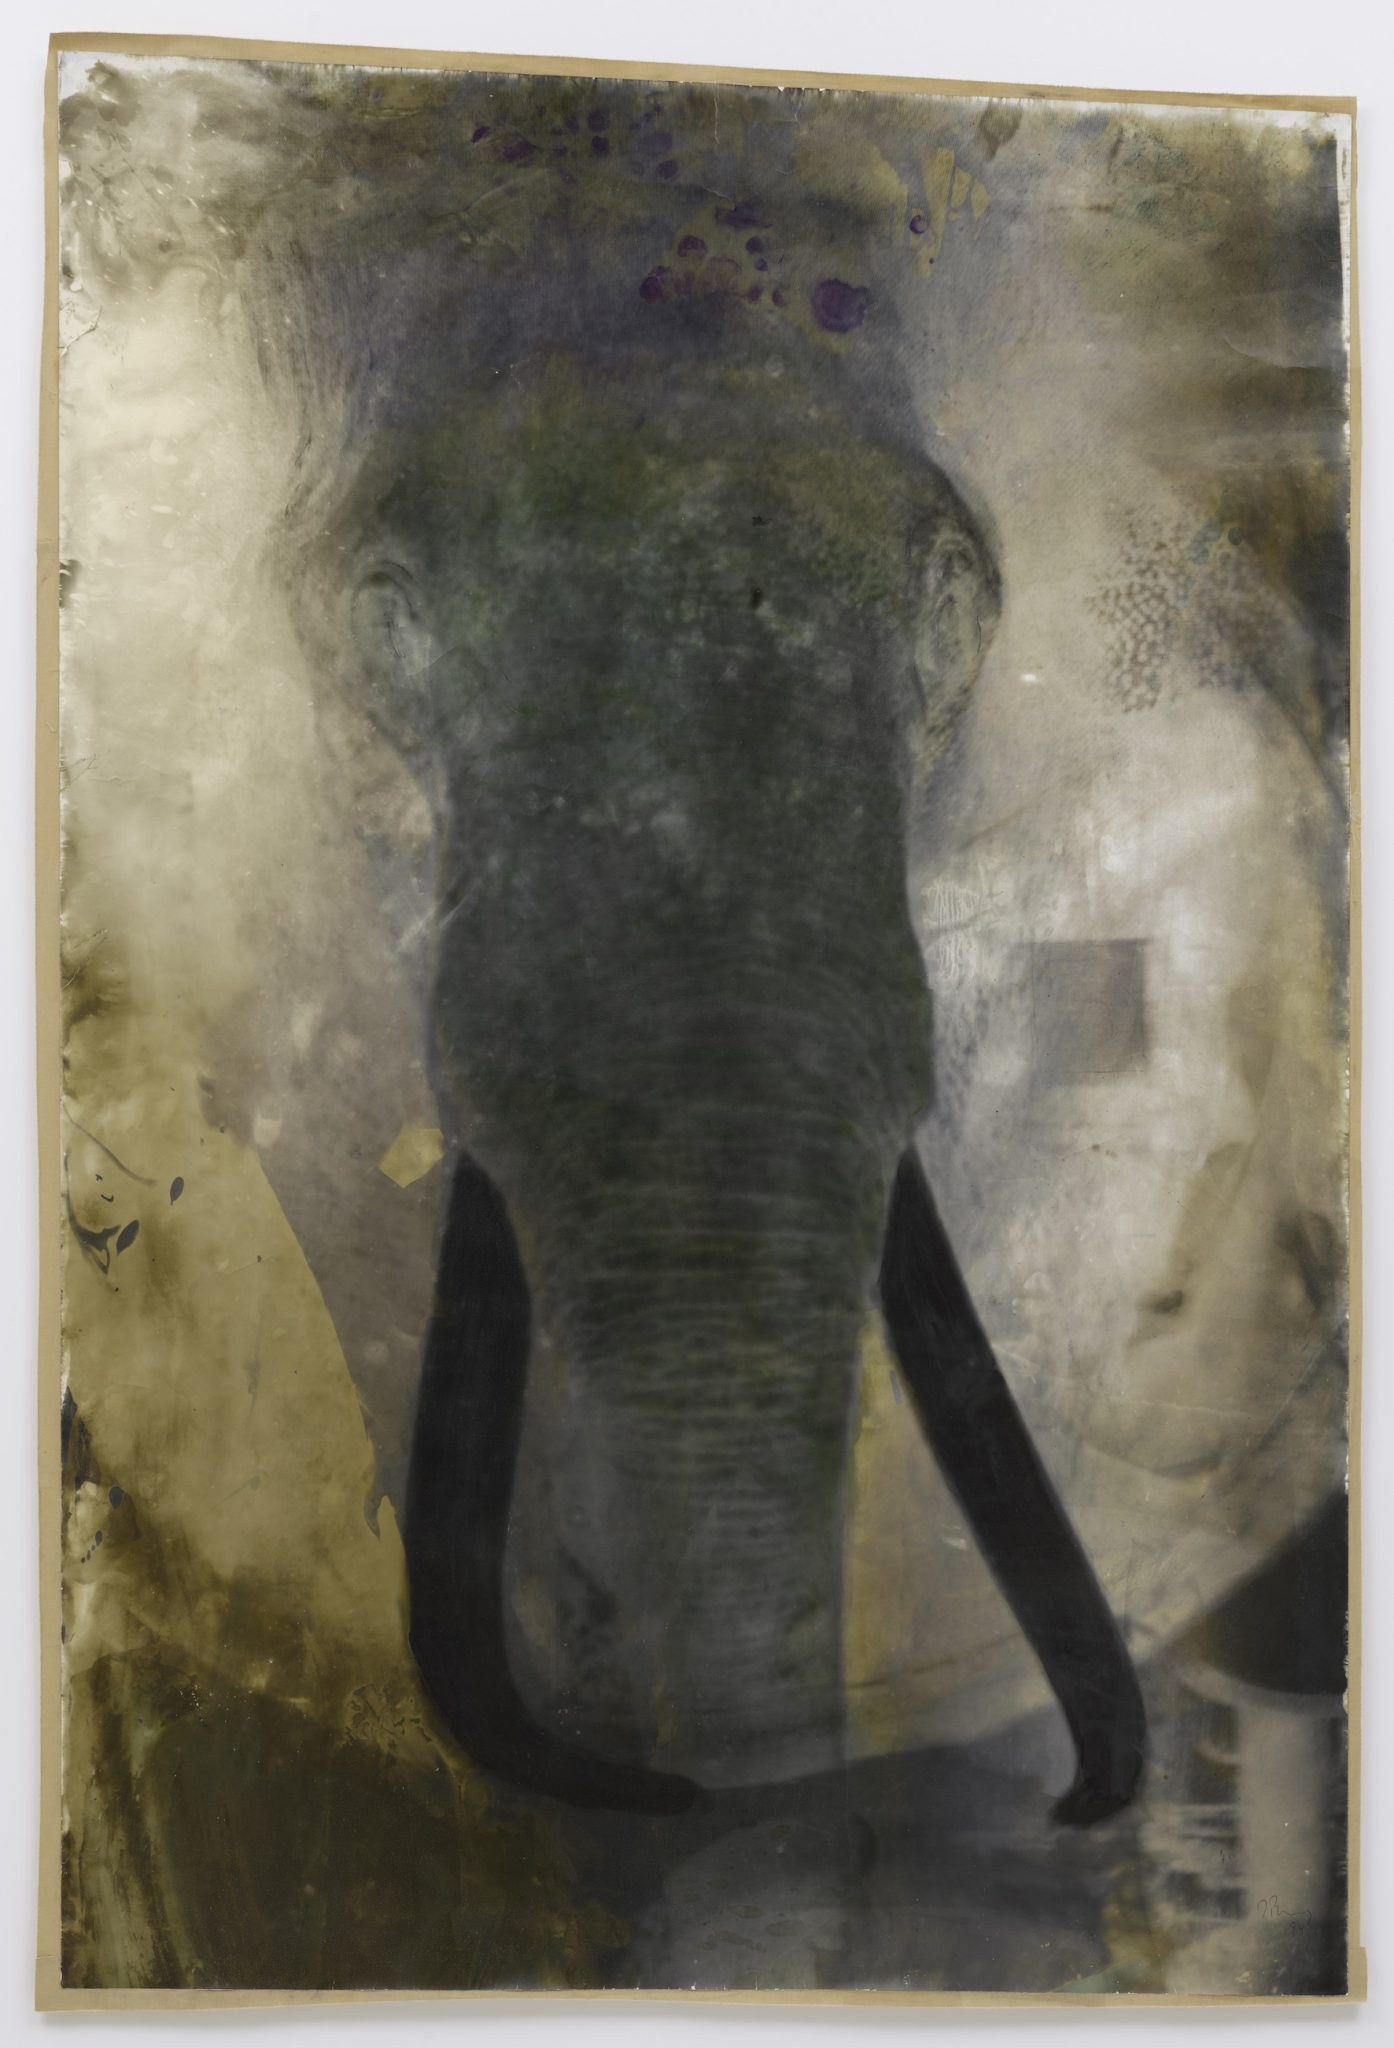 Elephant, 2018, b/w photograph on Baryt paper, coloured, 170 x 126 cm